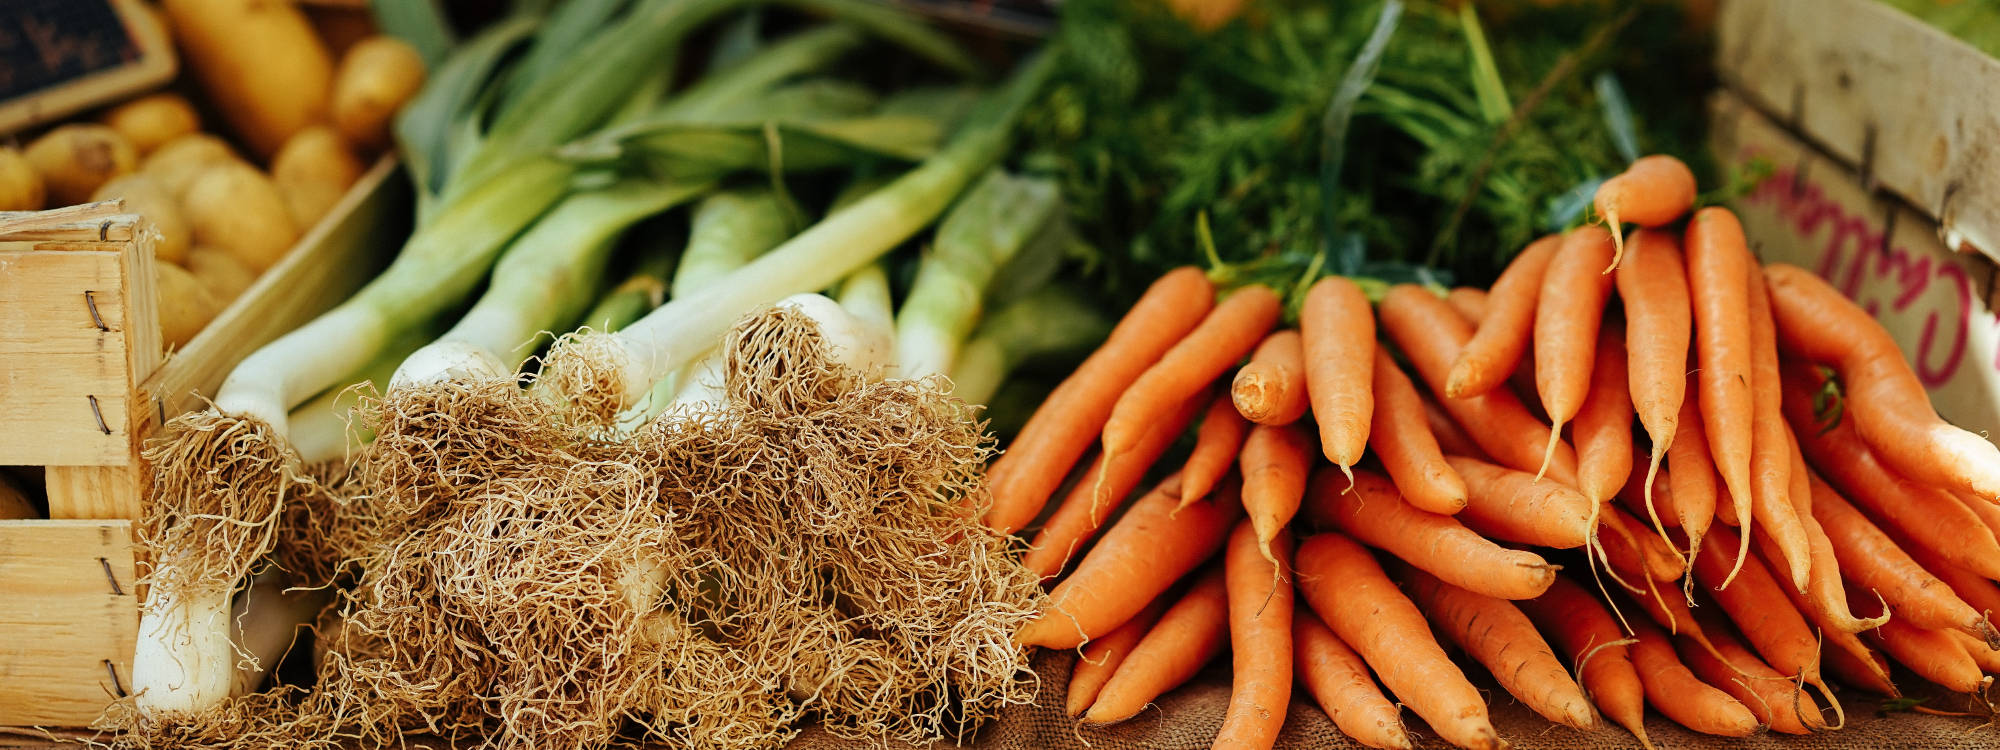 Sourcing healthy, organic, locally grown food is part of Conscious Living